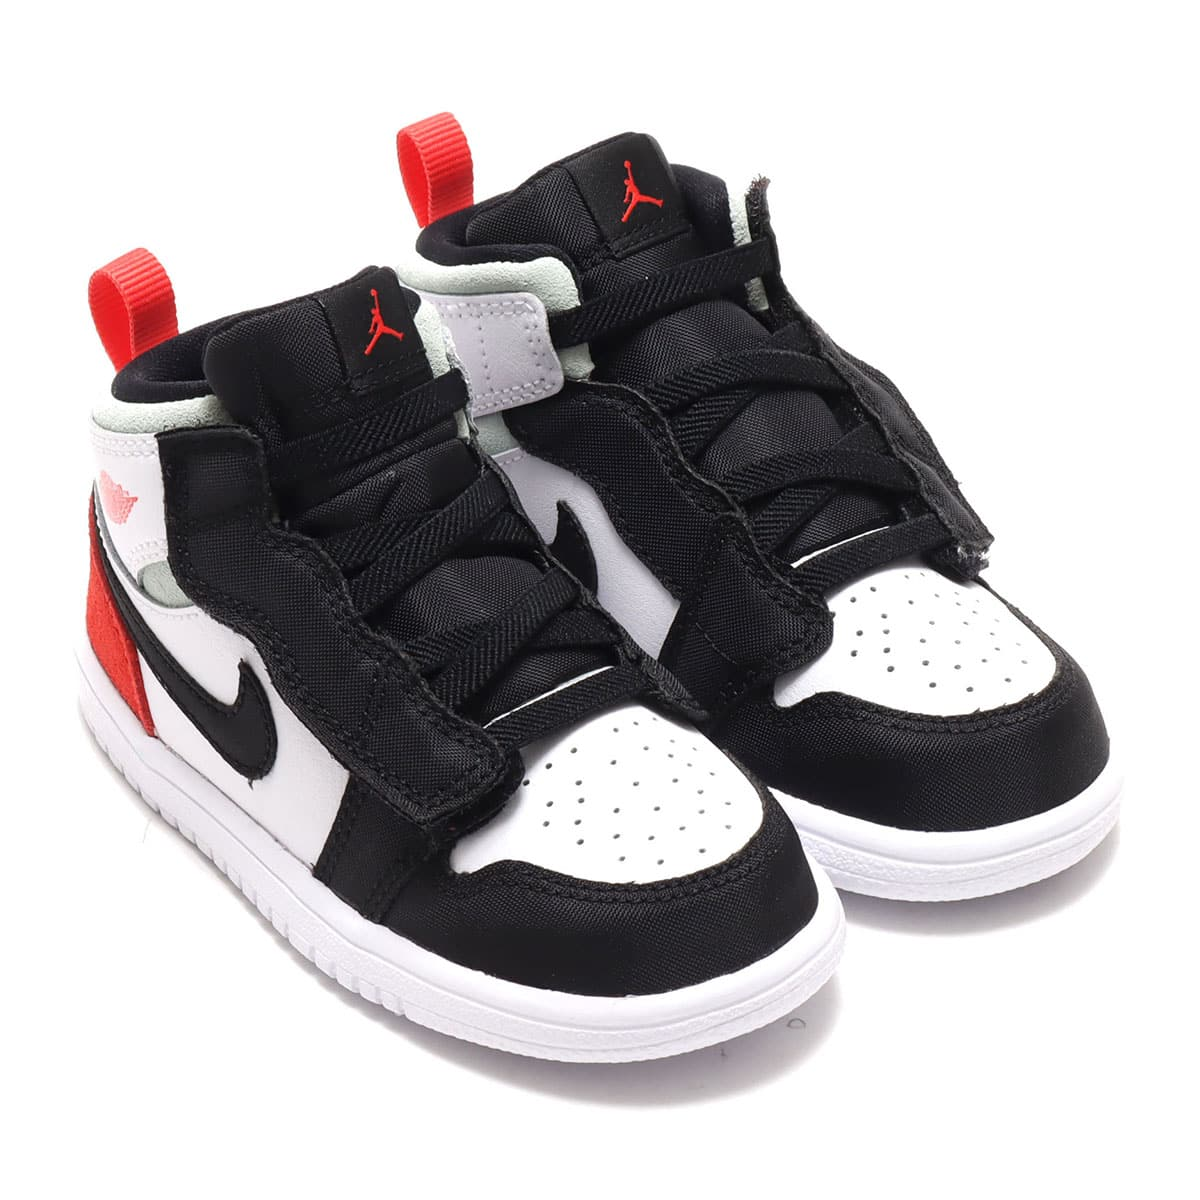 JORDAN BRAND JORDAN 1 MID ALT (TD) WHITE/TRACK RED-BLACK-IGLOO 20FA-I_photo_large